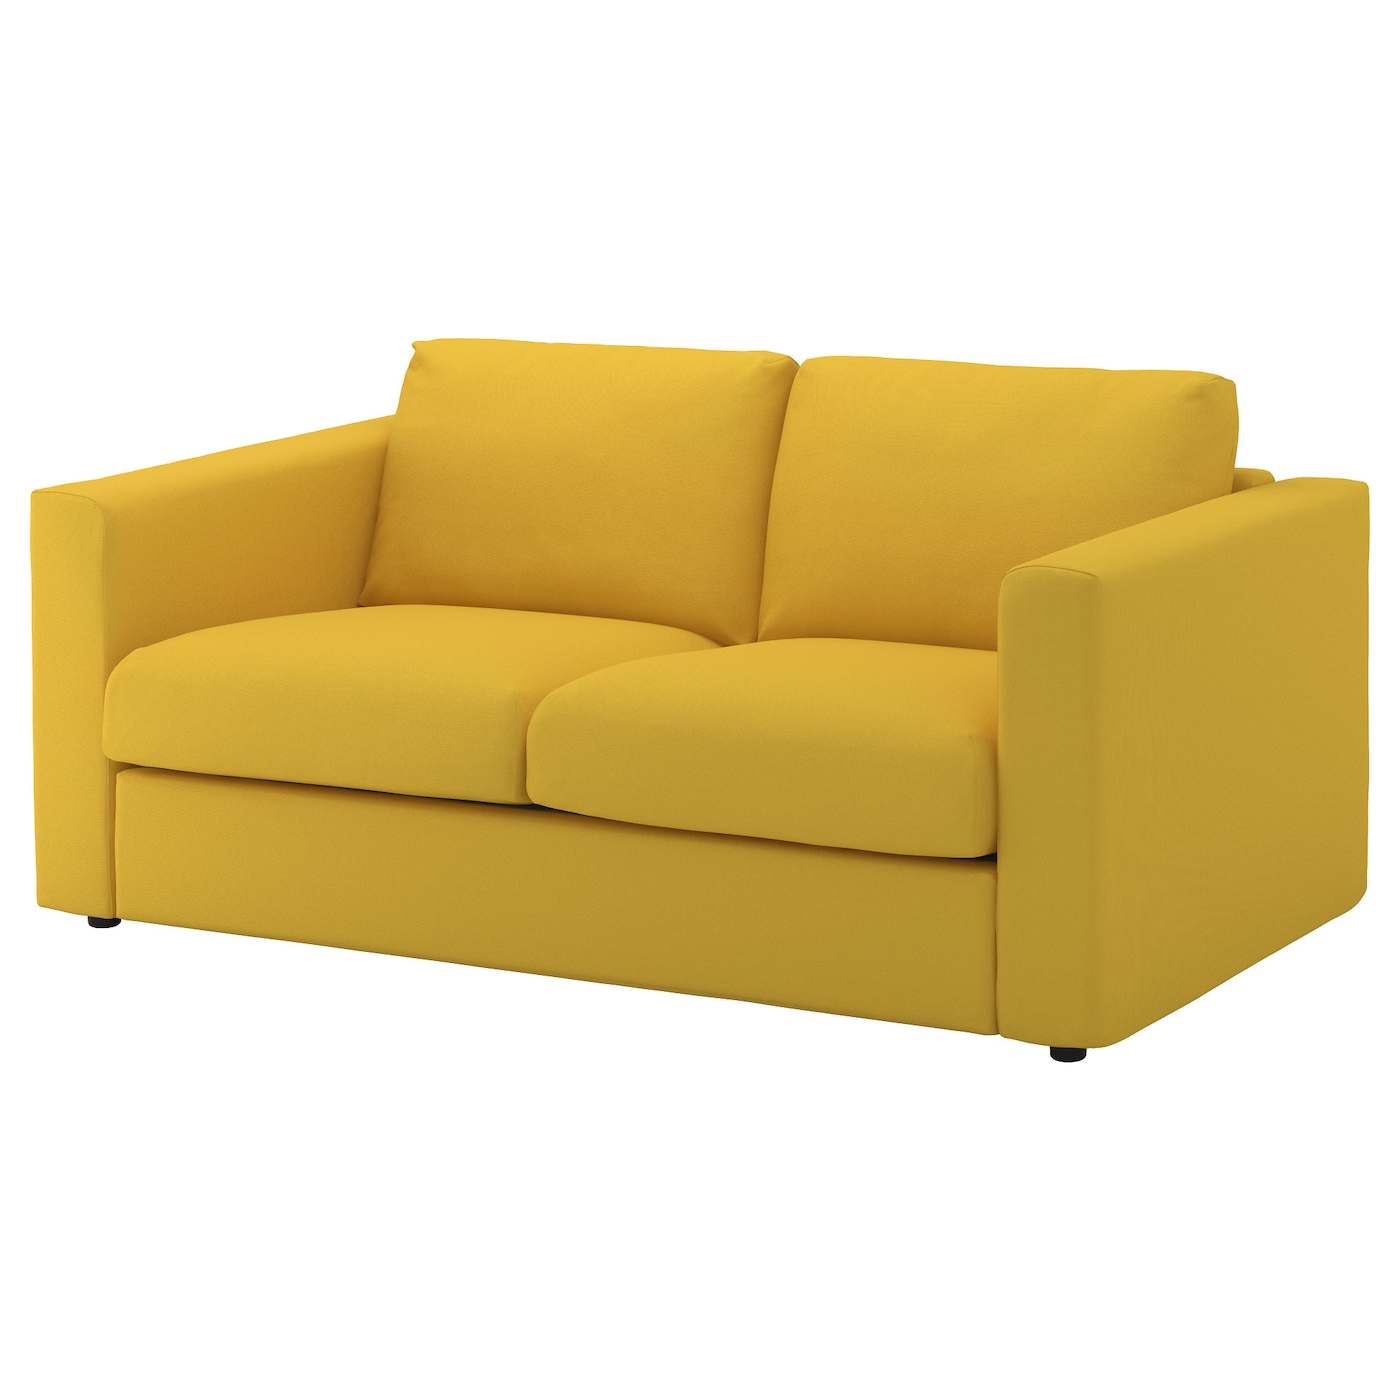 vimle cover for 2 seat sofa gr sbo golden yellow ikea. Black Bedroom Furniture Sets. Home Design Ideas